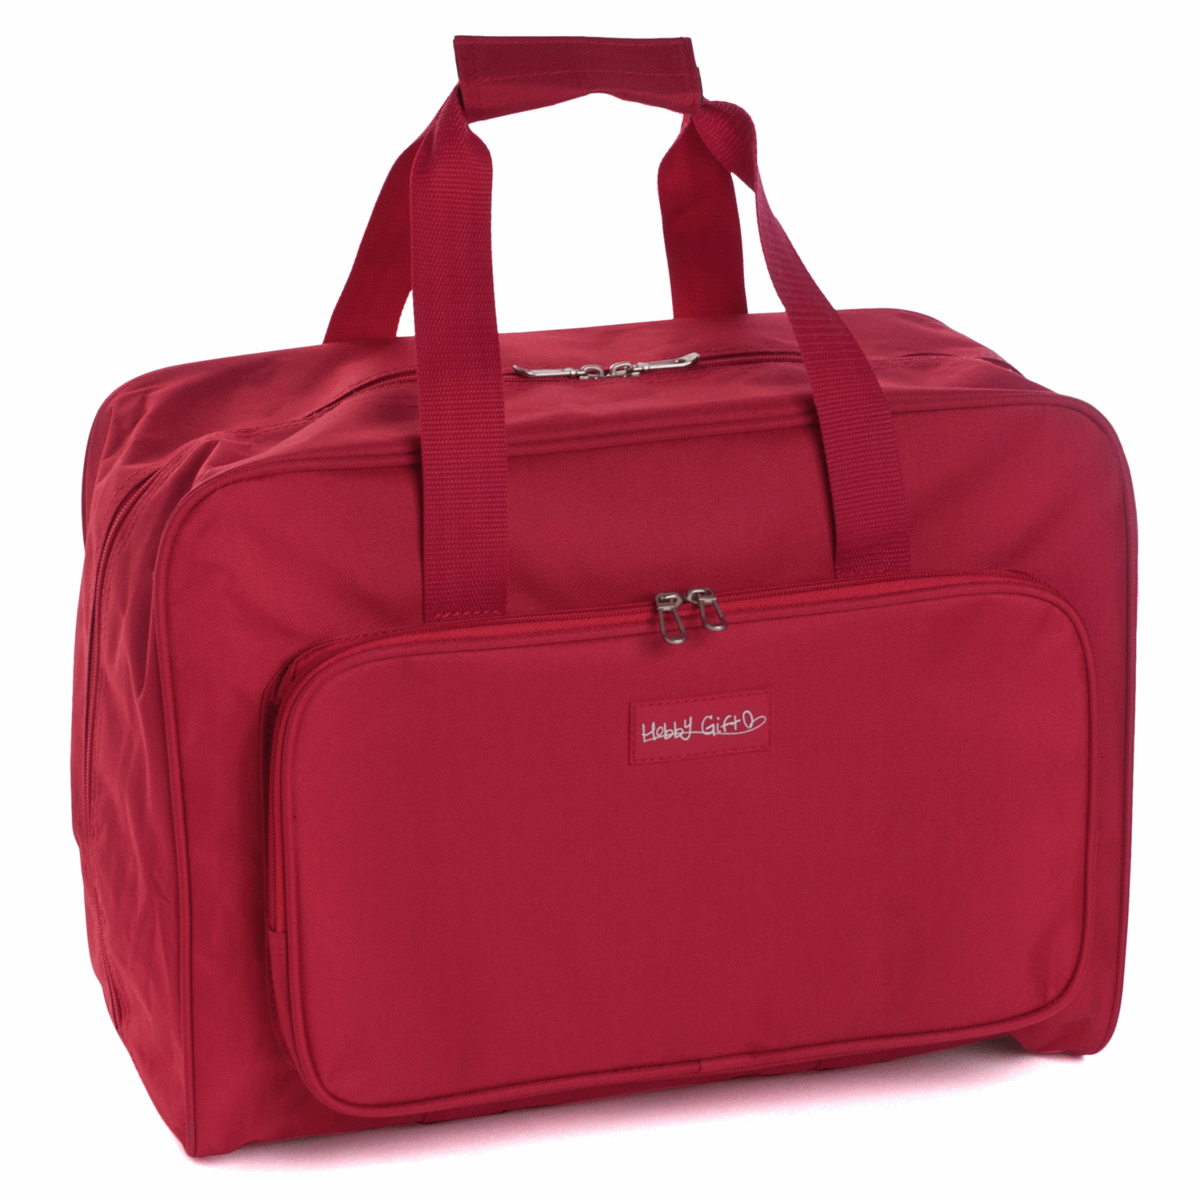 Luxury Sewing Machine Bag - Red